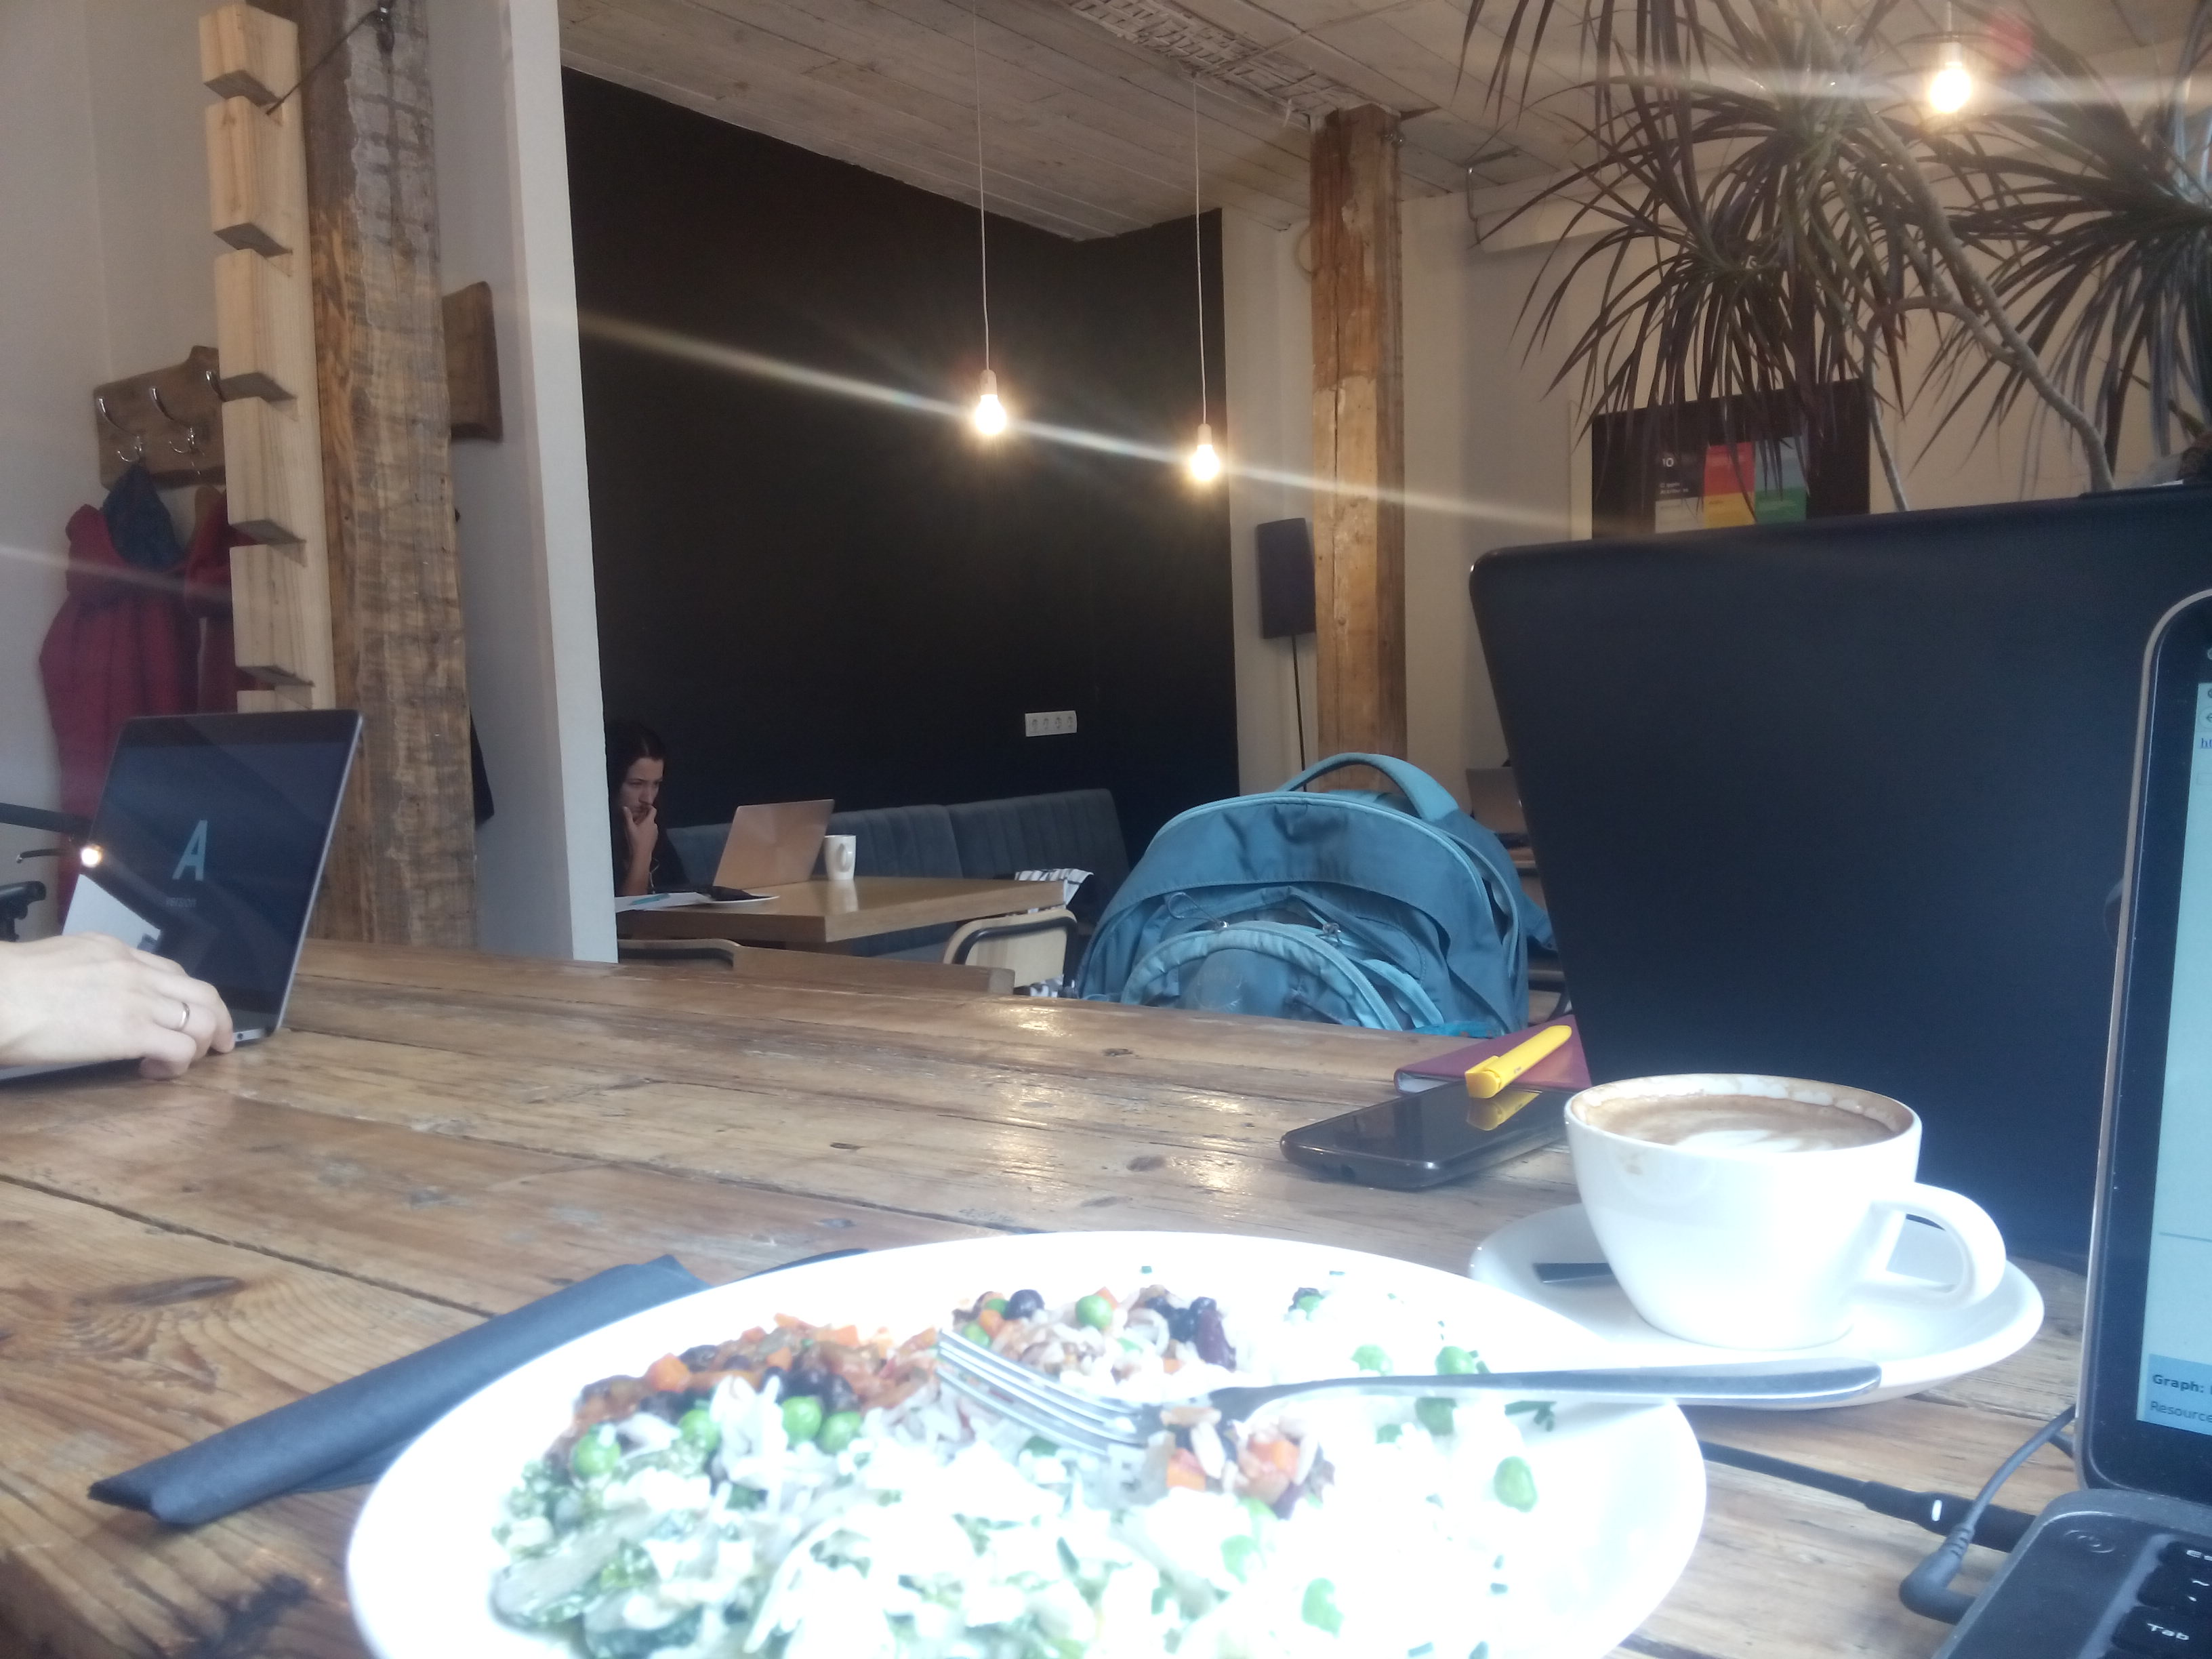 A wooden table bears a plate of chilli and rice beside a foamy latte. In the background is a hipster cafe with lights on long strings, wooden beams and people with laptops